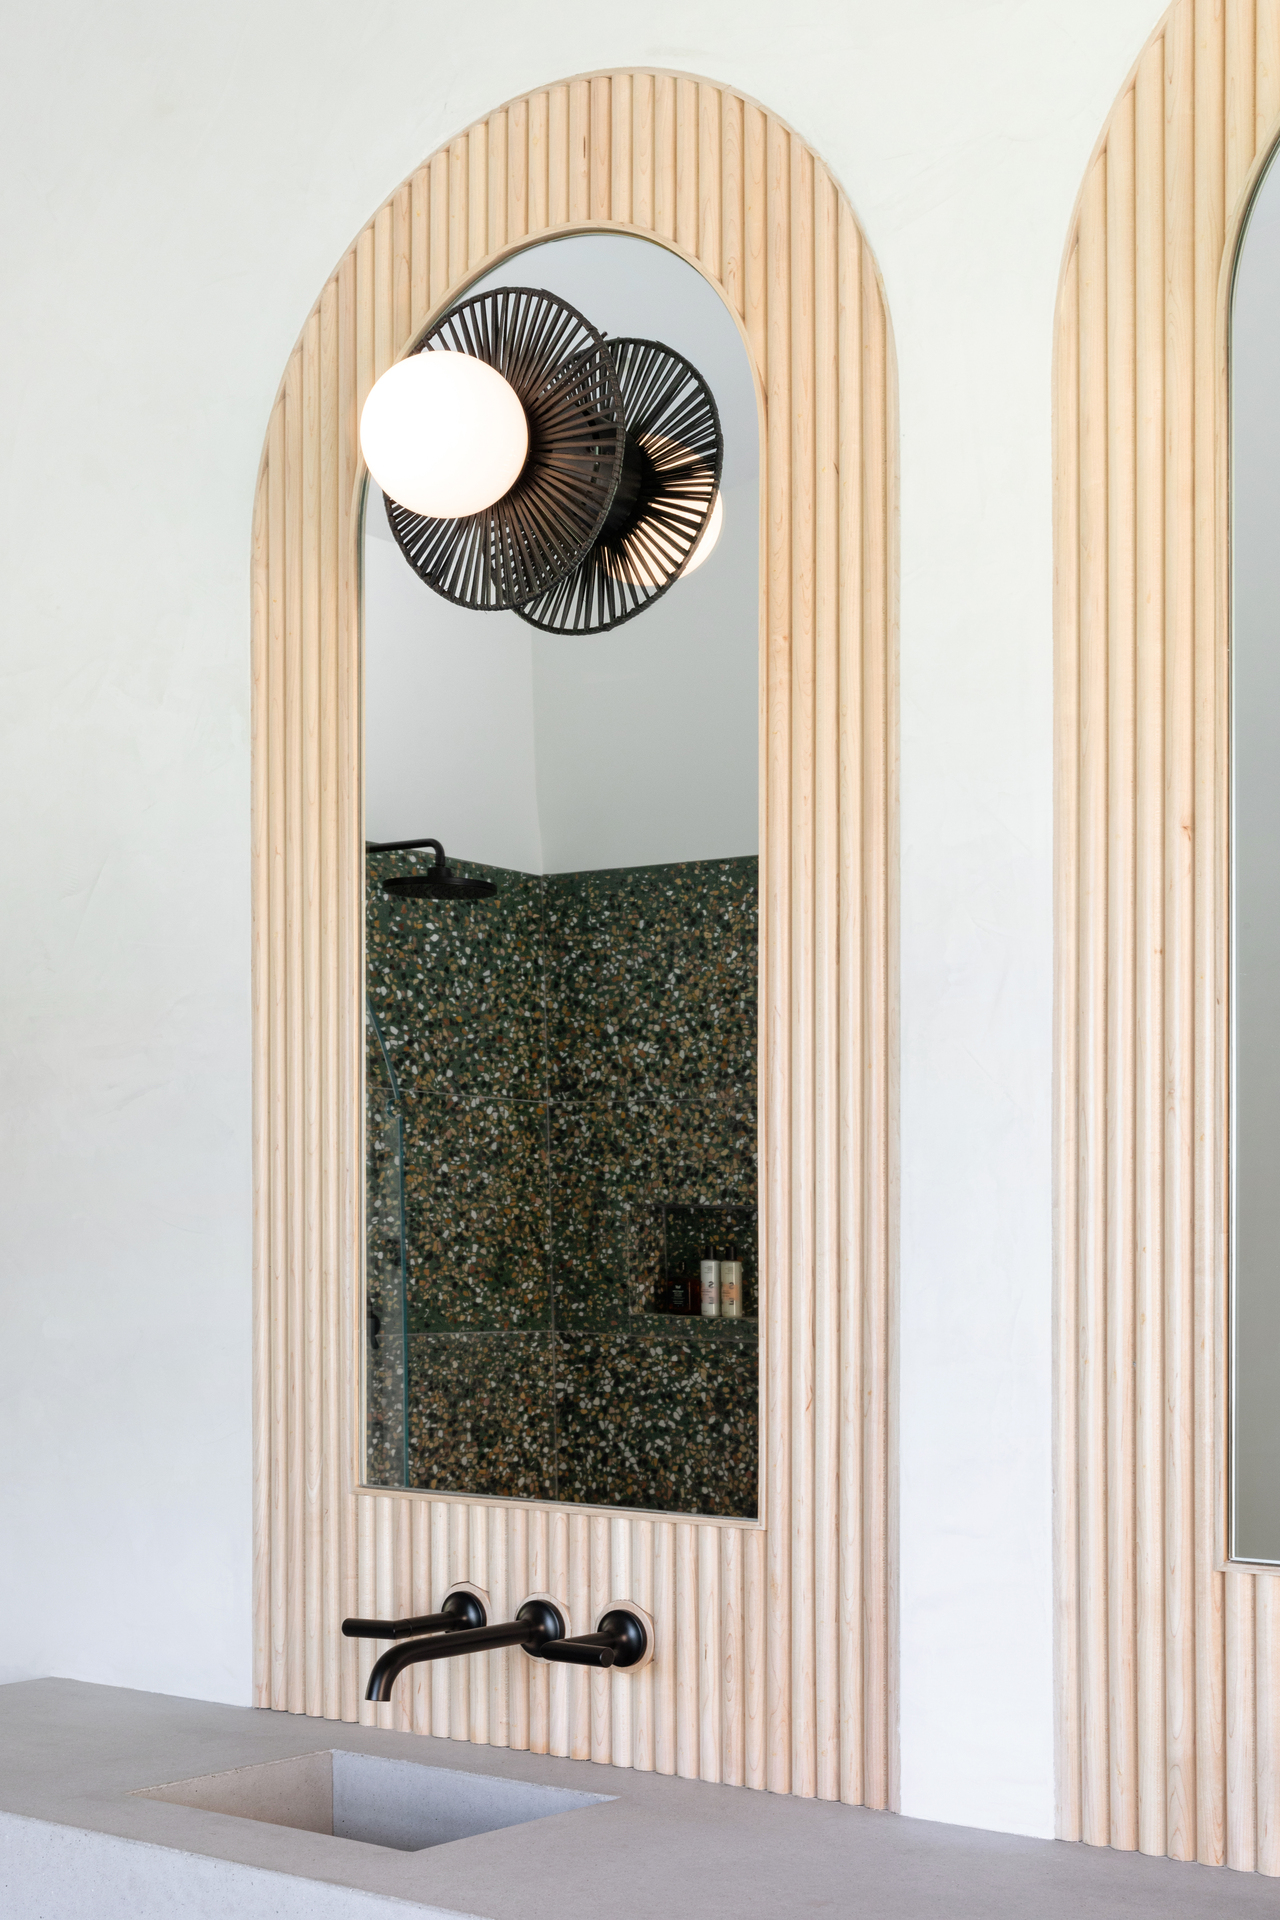 Beautiful solid wood tambour panels accent this bathroom mirror. Take restroom design to the next level with solid wood tambour panels from surfacing solution.